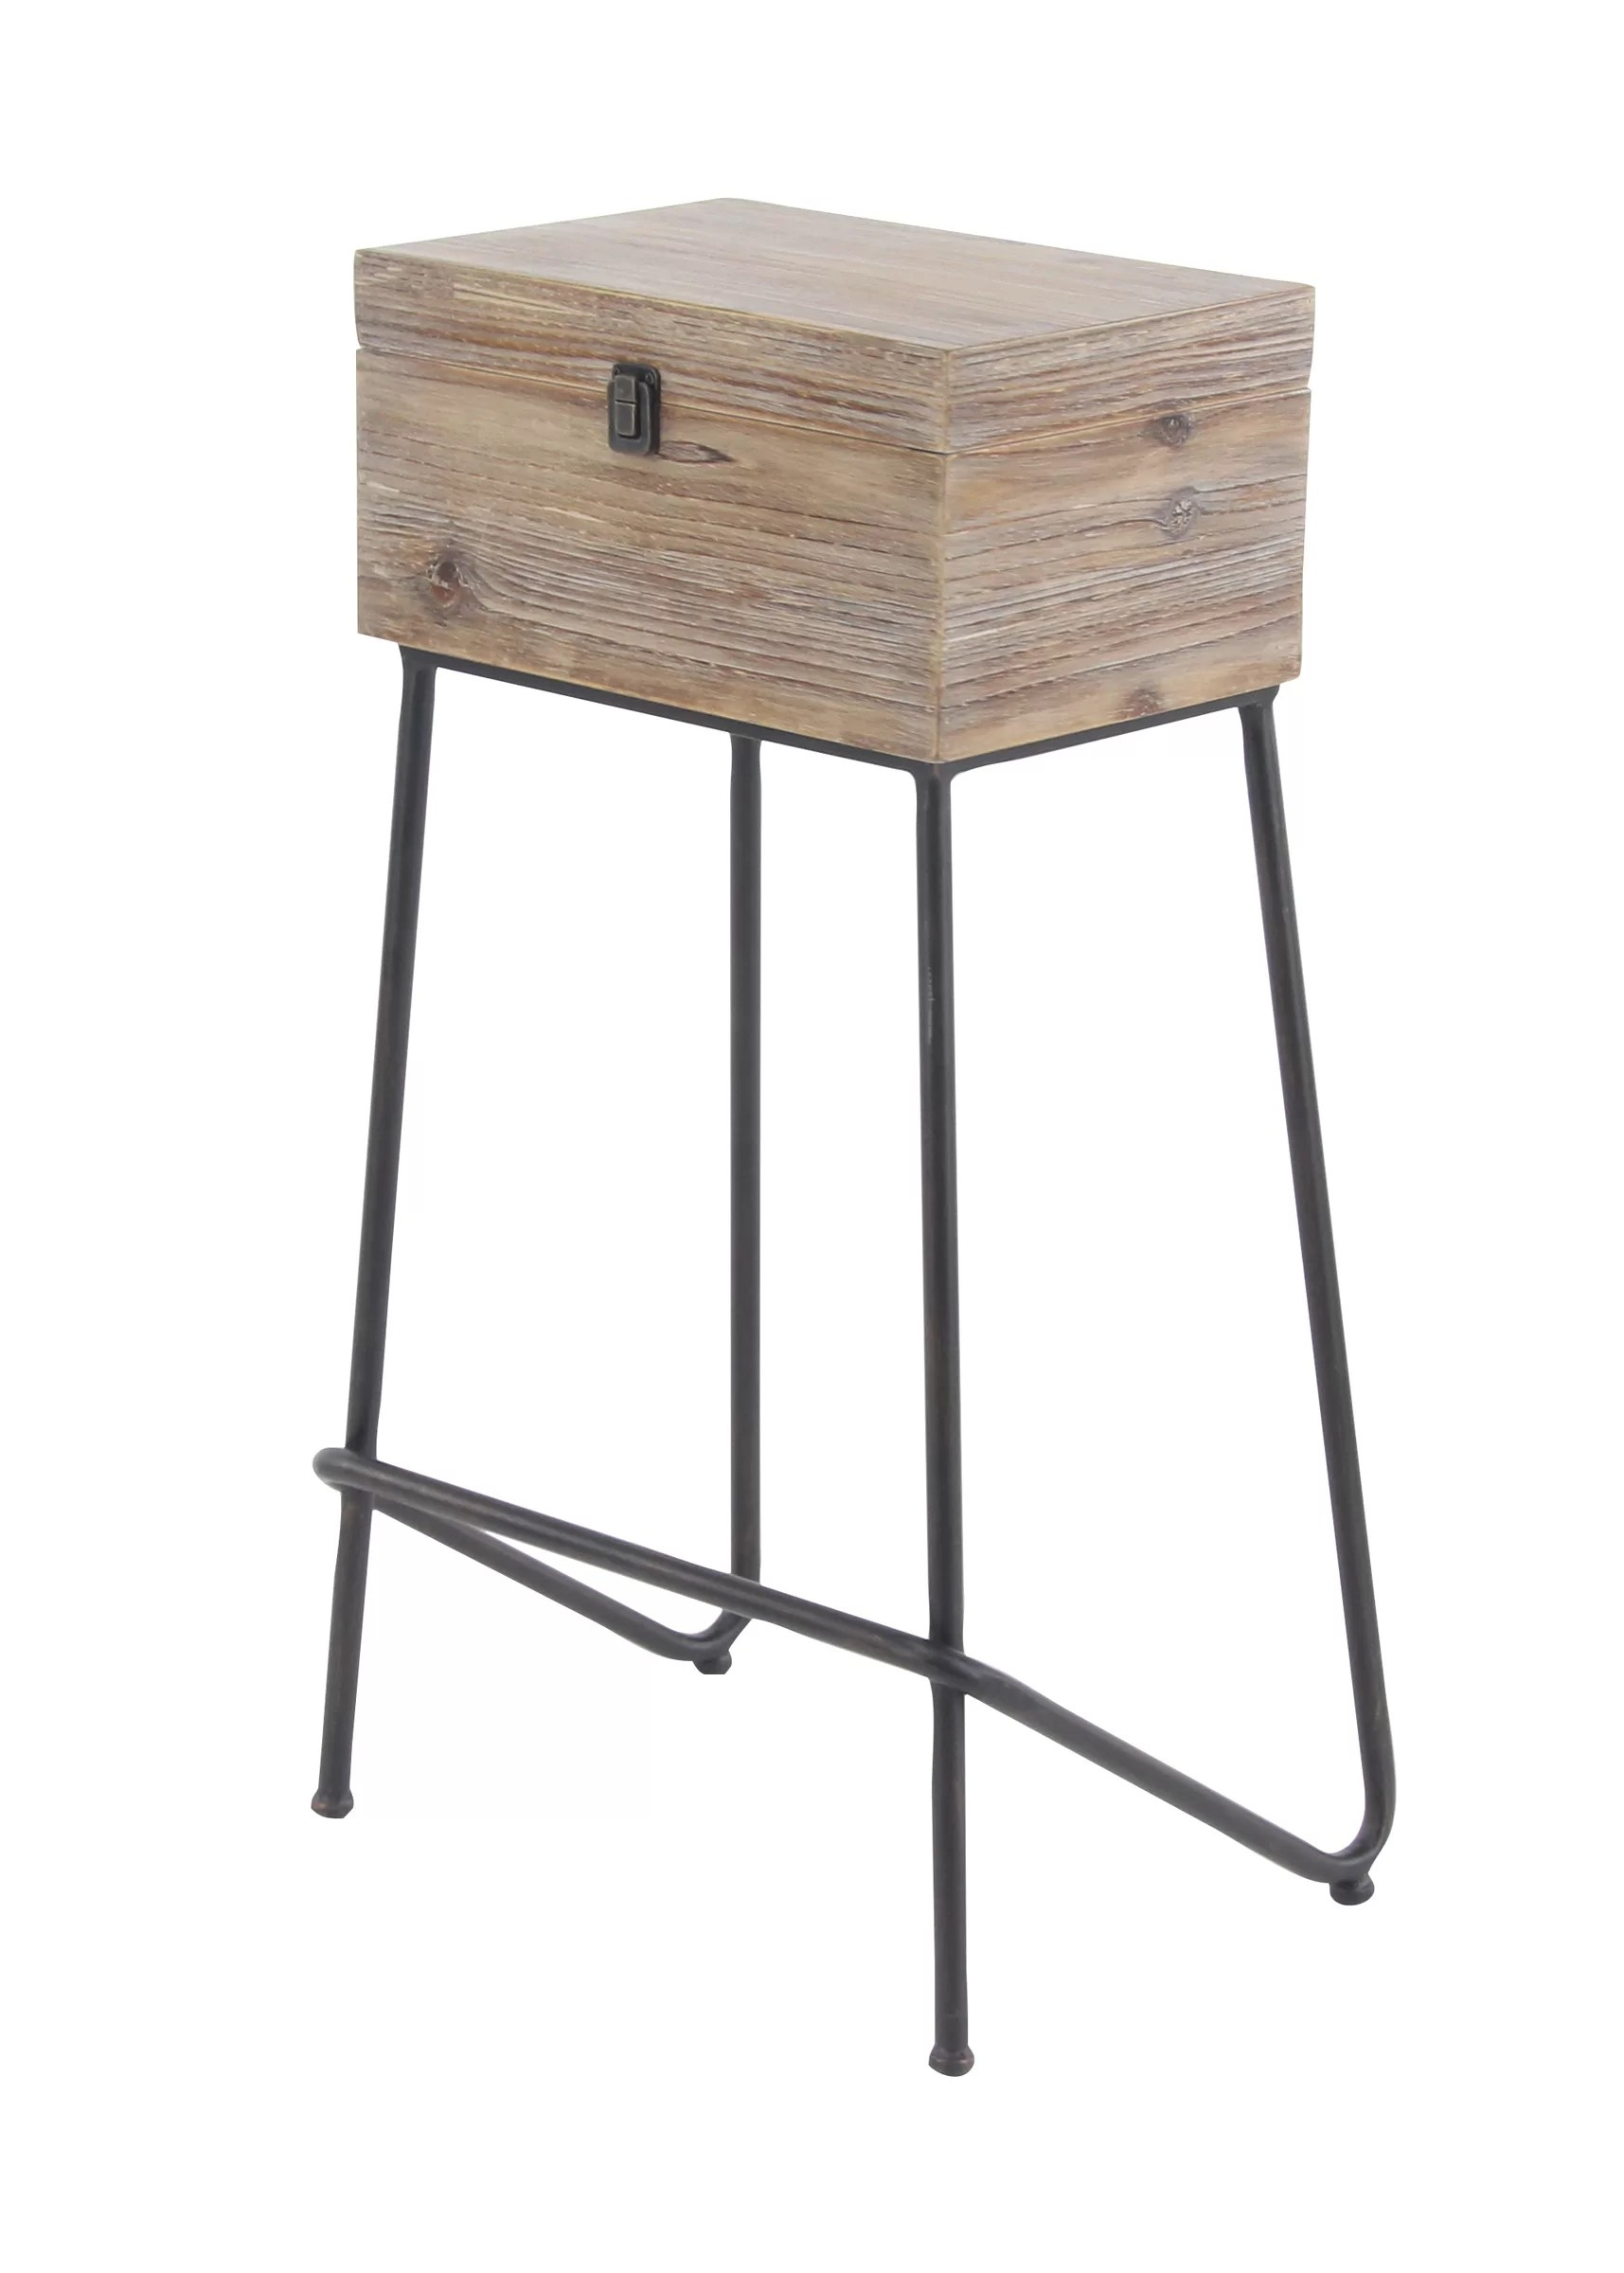 Rustic Wood End Table Kail Rustic Wood Box End Table